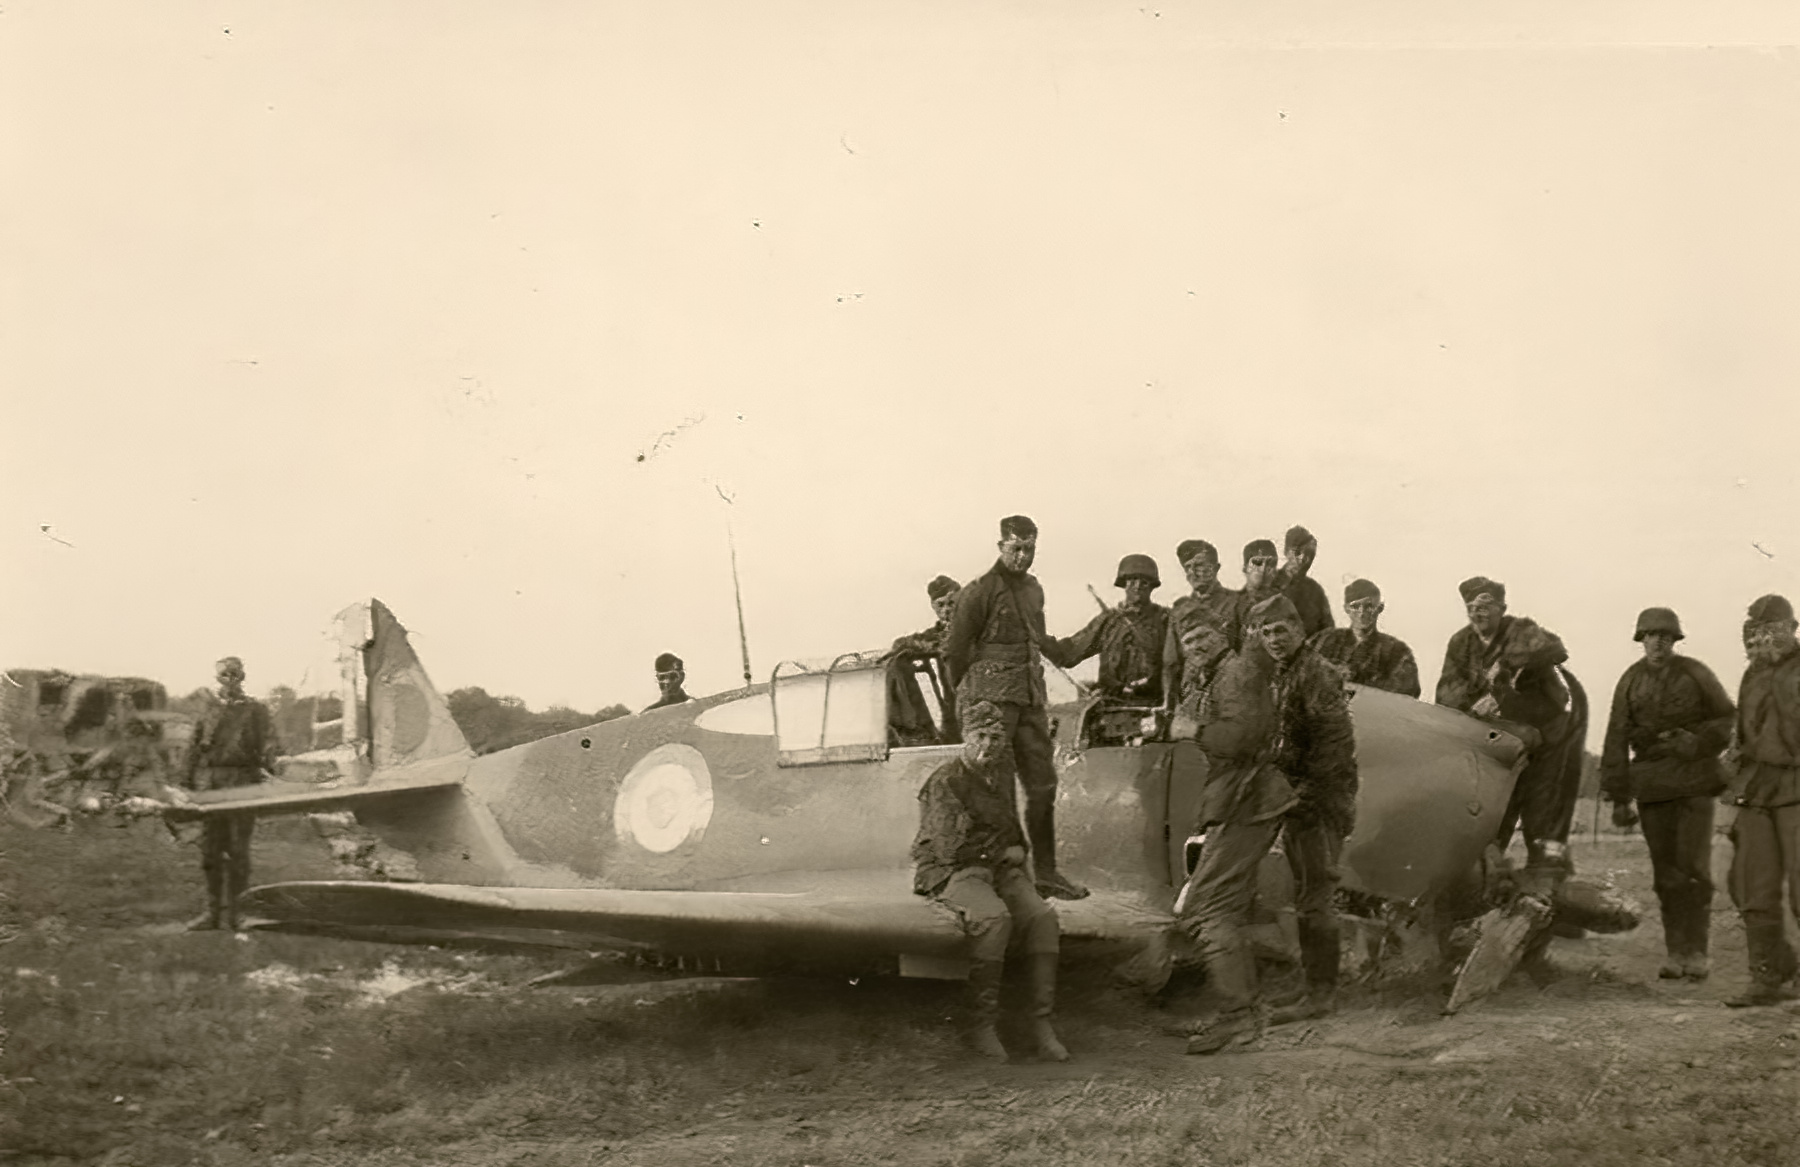 French Airforce Curtiss P 36 Hawk left abandoned after belly landing battle of France 1940 ebay 01